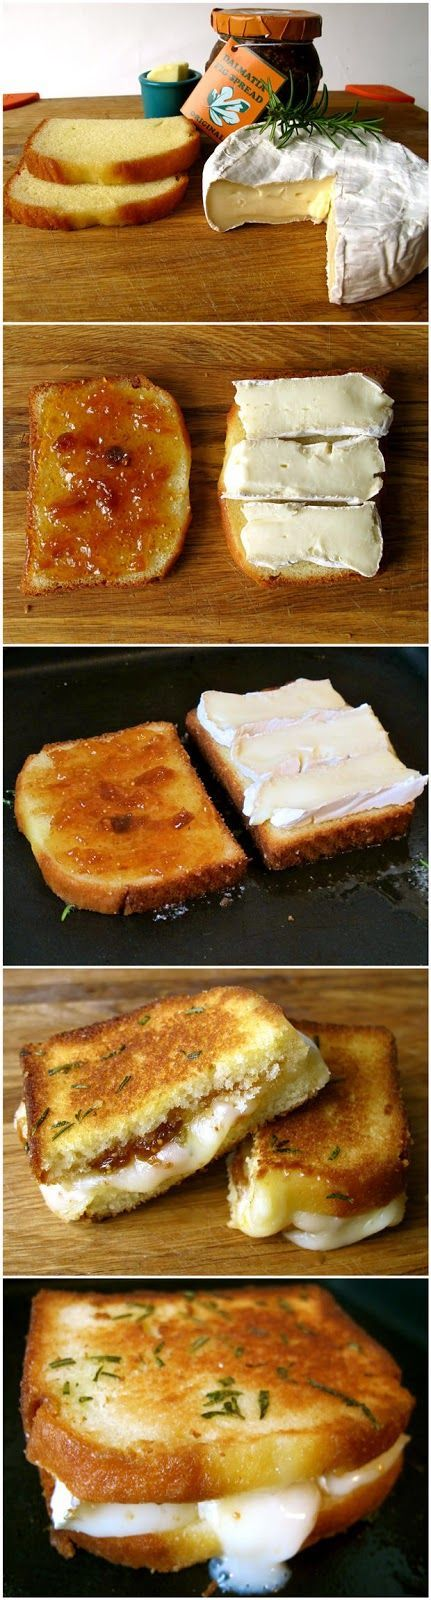 Grown up grilled cheese sandwich | CookJino